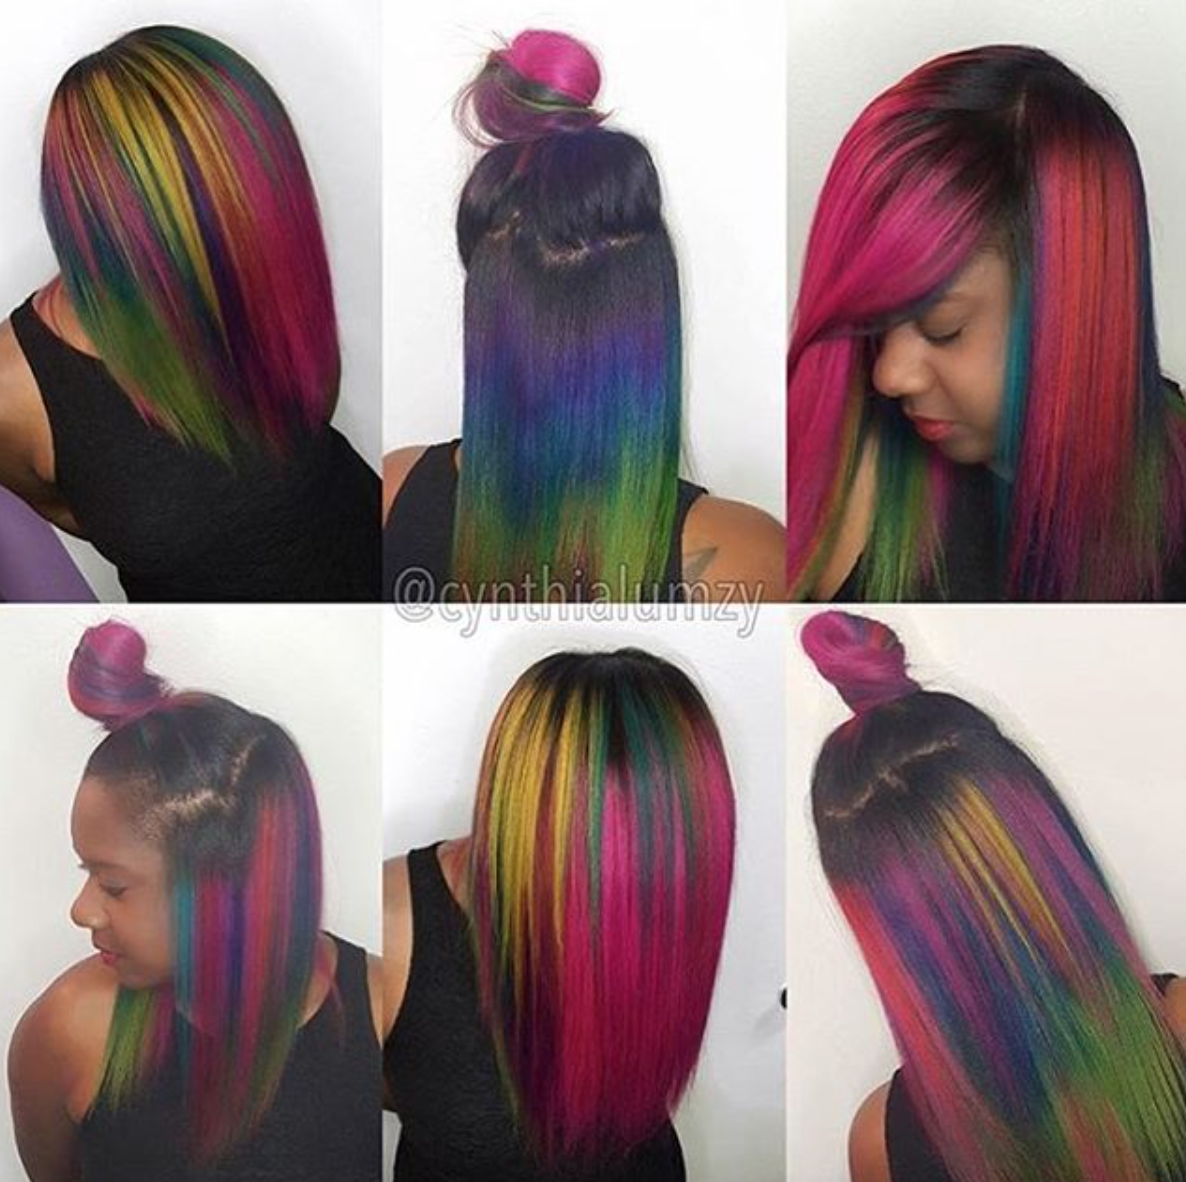 Image gallery mermaid hair - How Pretty Is This Mermaid Hair Color By A Different Look Look With Each Way She Parts It